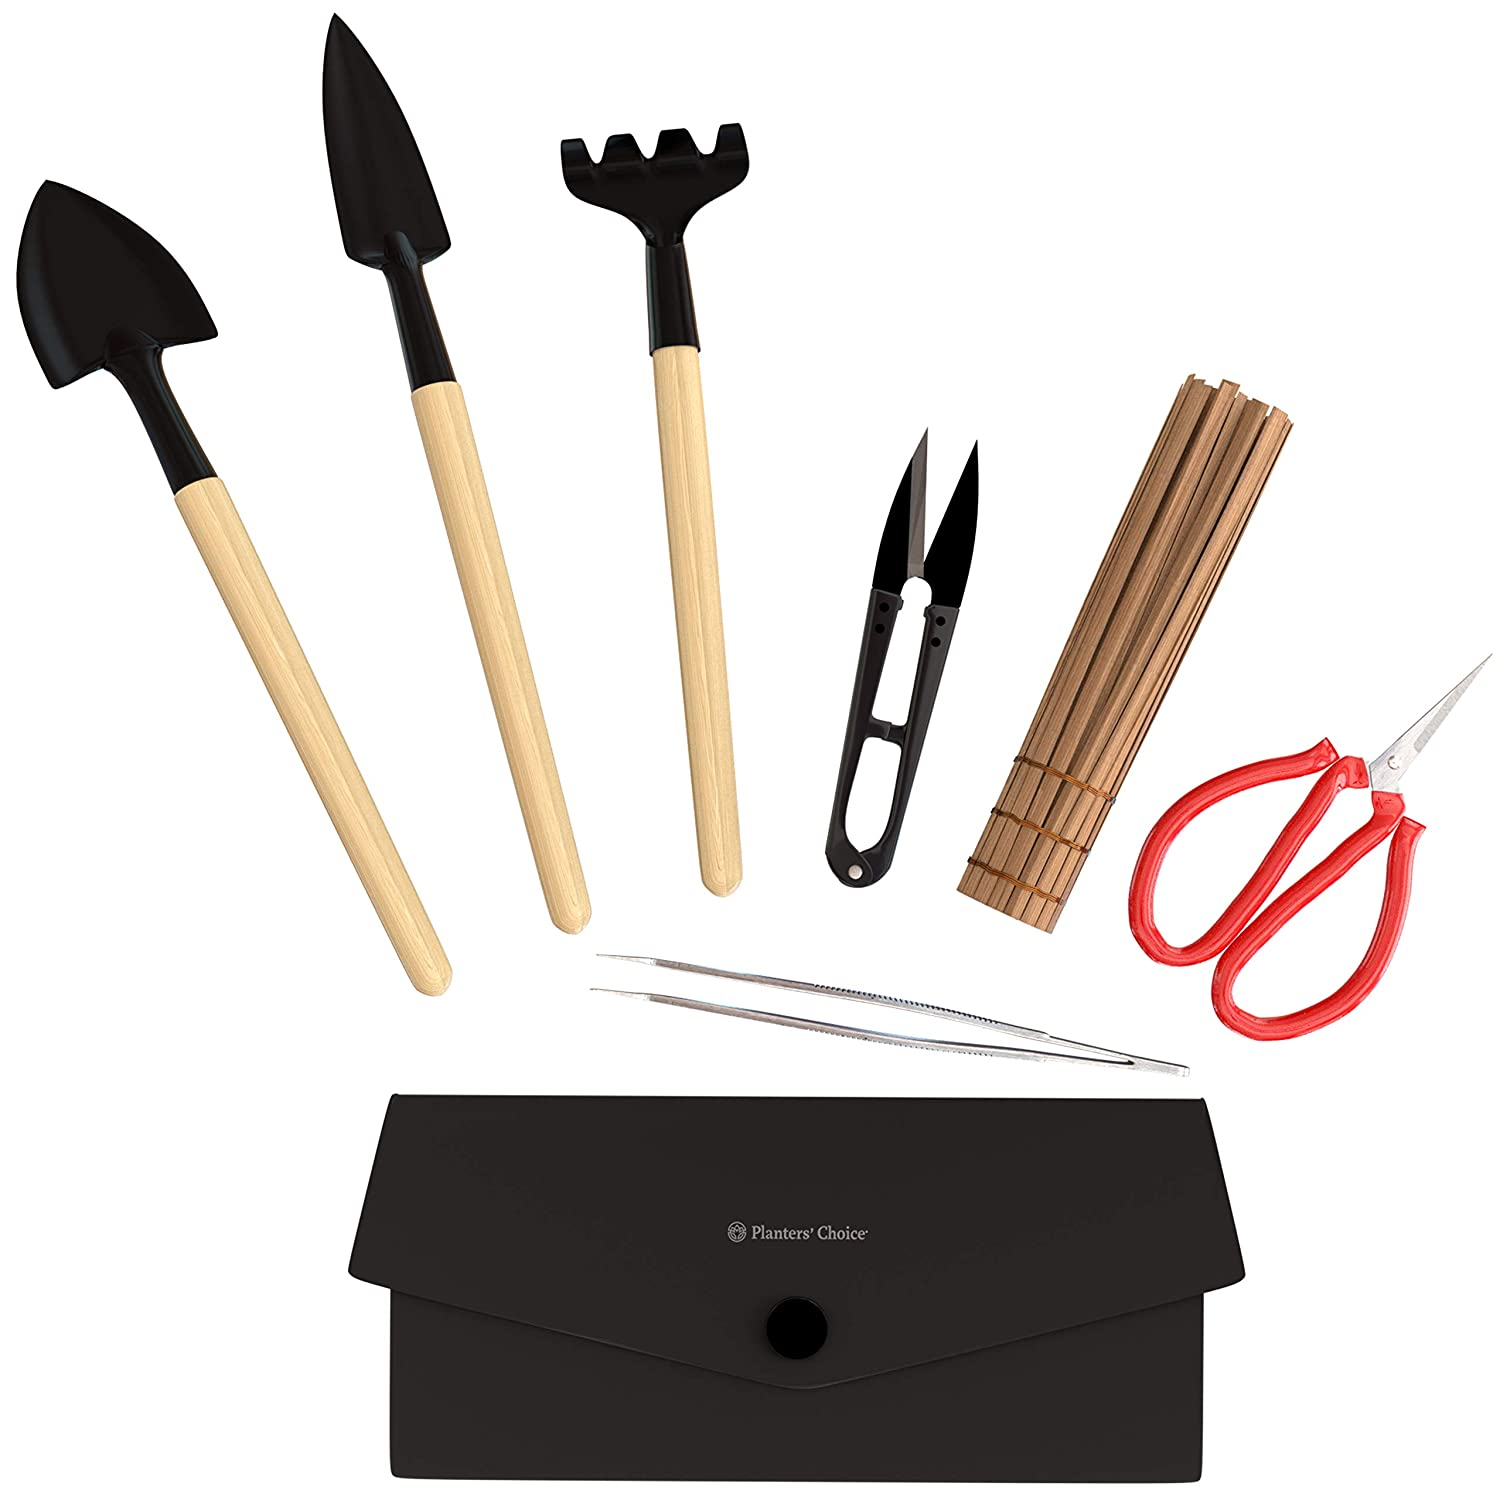 Bonsai Tool Kit Deluxe - Includes: Wooden Rake, Long & Wide Spades, Scissors, Tweezers, Bamboo Brush, and Pruning Shears (Trimmer/Clipper) in Storage Holder | Bonsai Tools Accessories